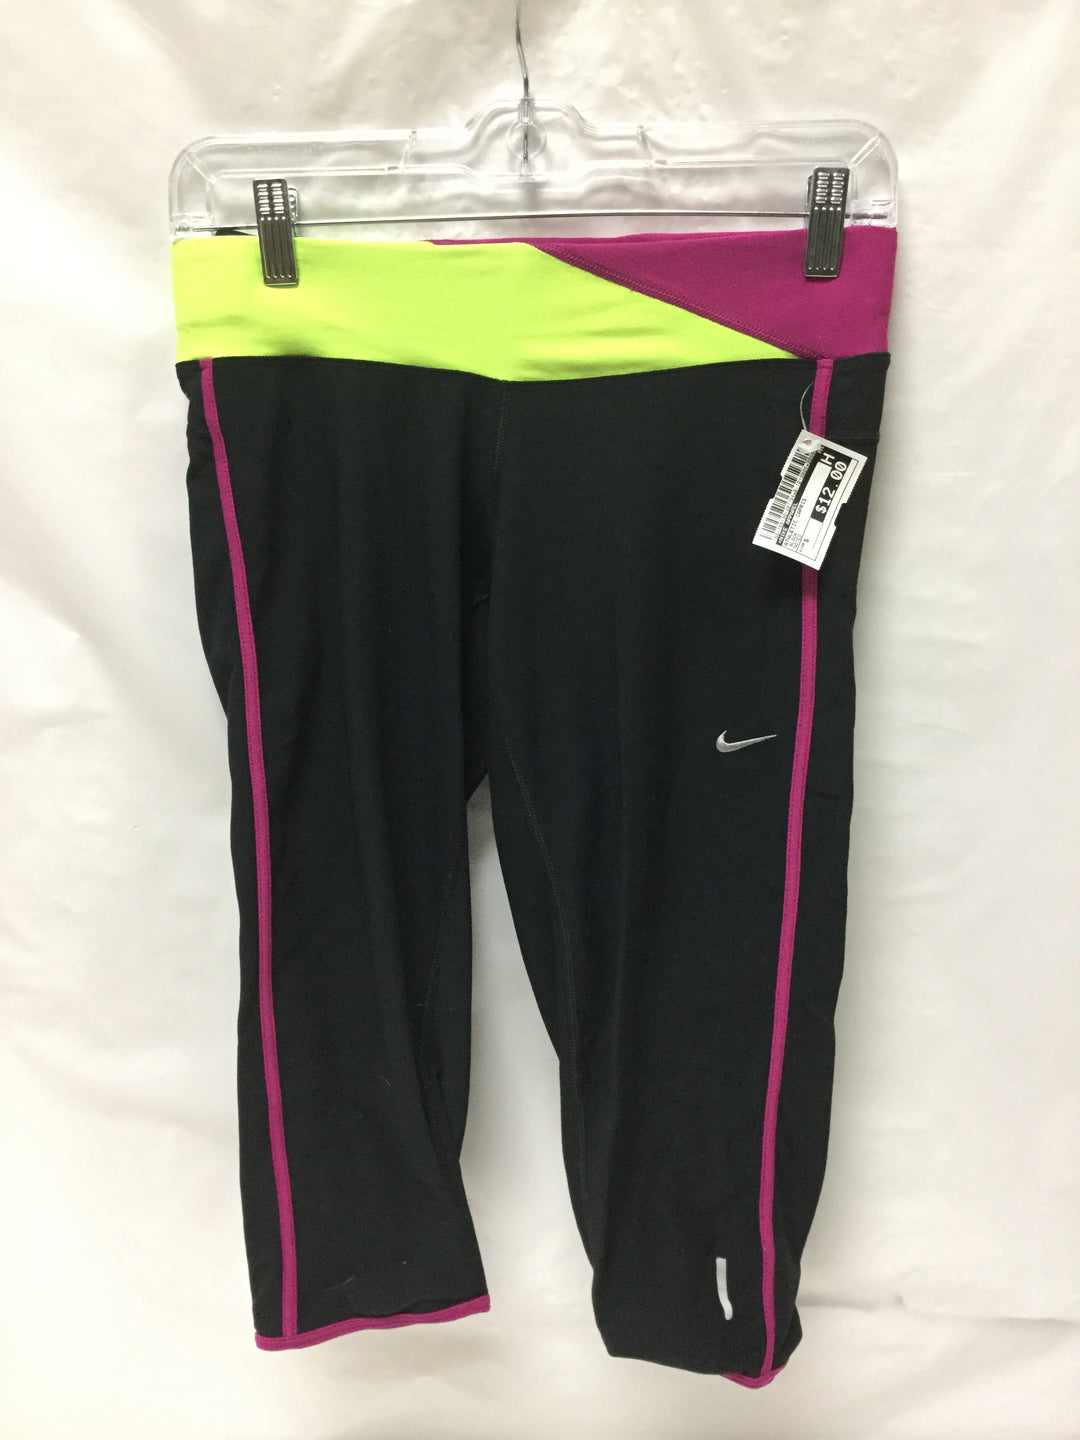 Primary Photo - BRAND: NIKE APPAREL <BR>STYLE: ATHLETIC CAPRIS <BR>COLOR: BLACK MAGENTA NEON YELLOW <BR>SIZE: S <BR>OTHER INFO: NOTED <BR>SKU: 155-155130-207794